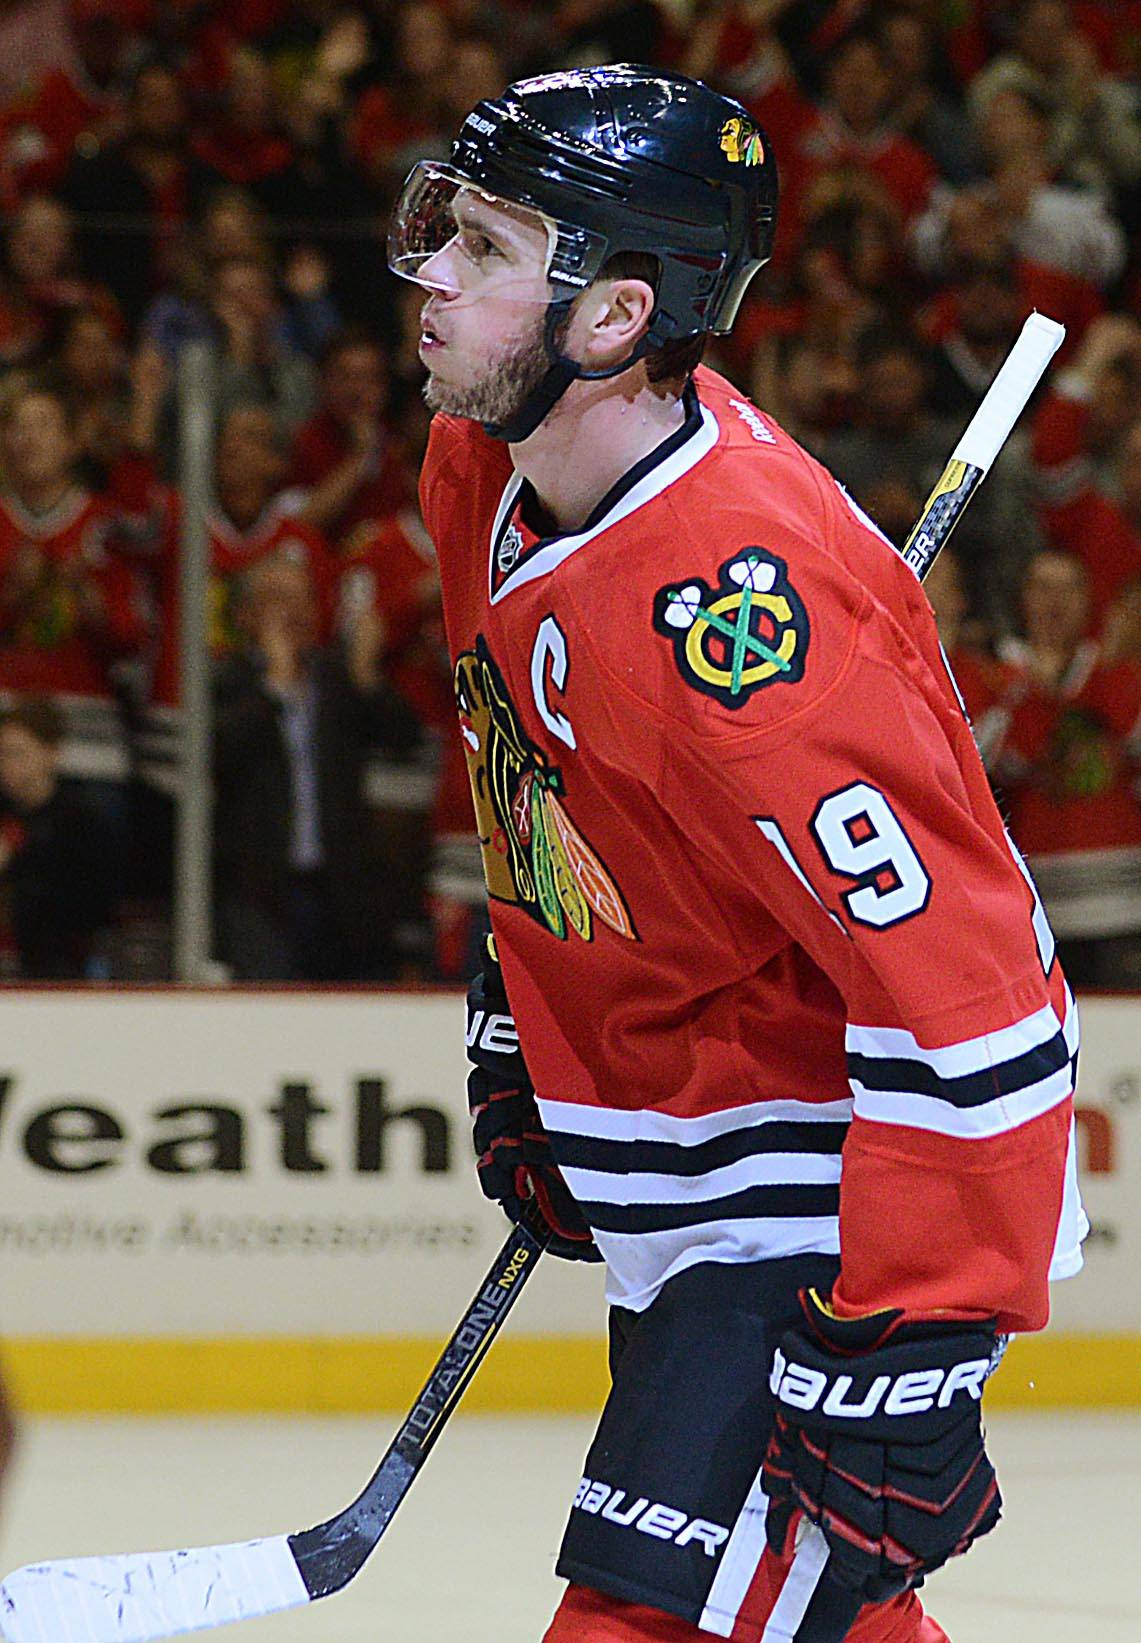 Verdi on the 3 C's of Captain Toews